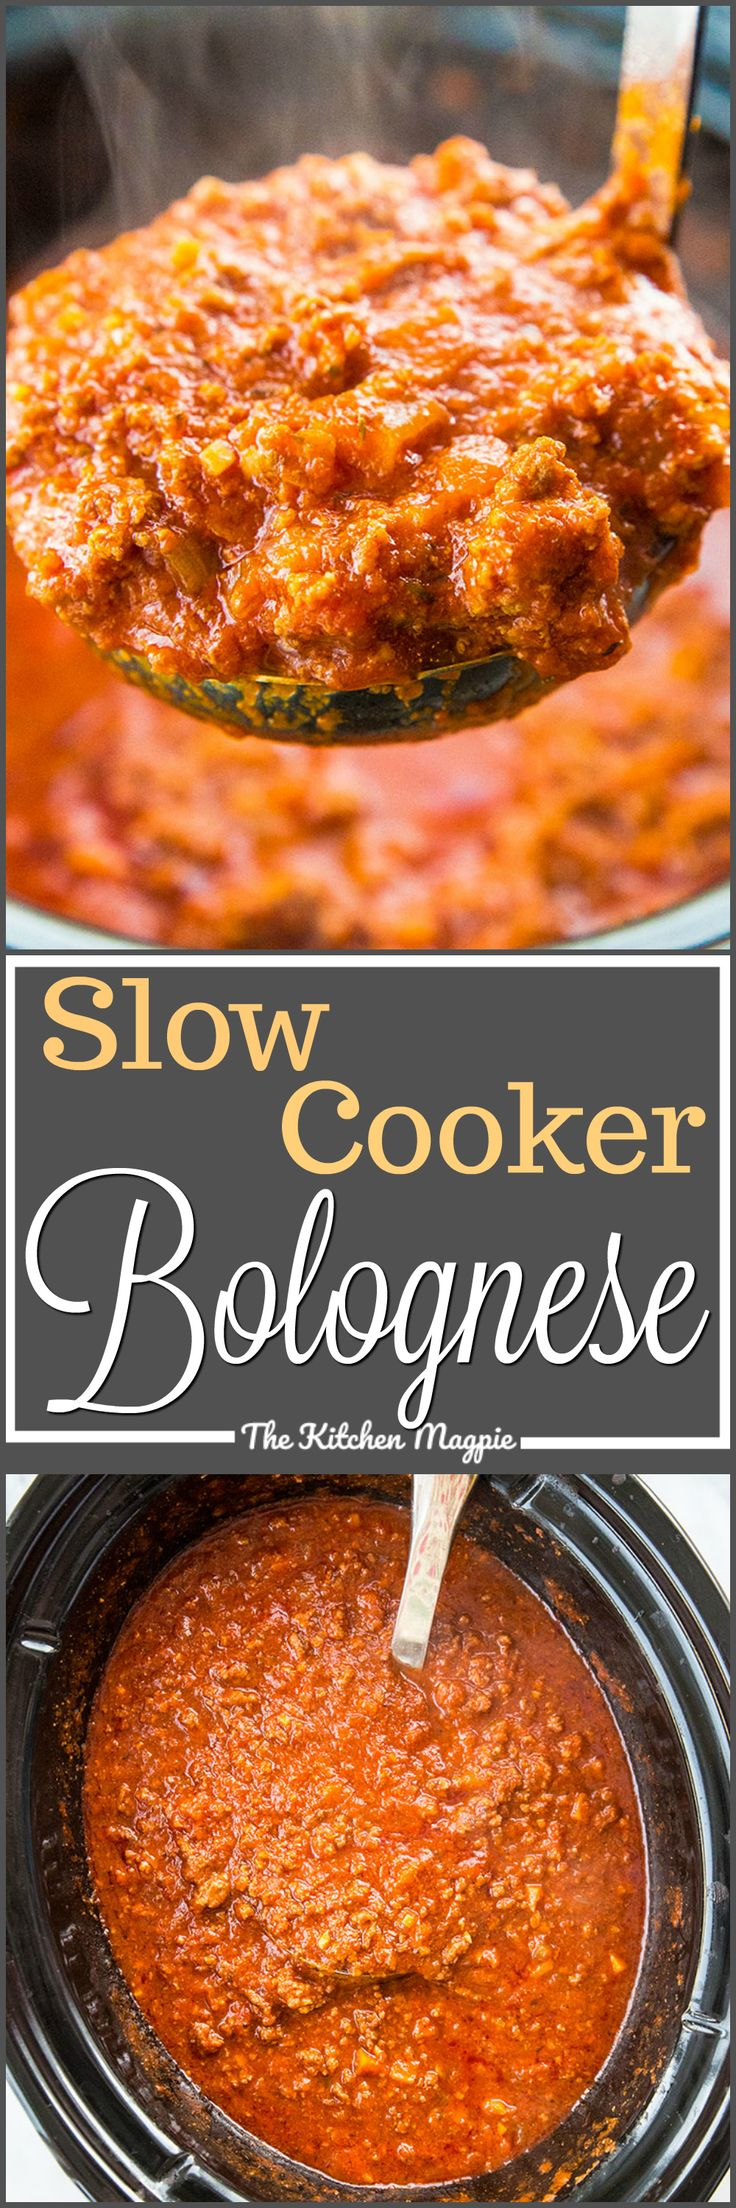 This dreamy slow cooker Bolognese sauce will be a family favourite! It cooks all day long and you end up with a velvety sauce that will change the way you think about sauces! Recipe from @kitchenmagpie via @kitchenmagpie